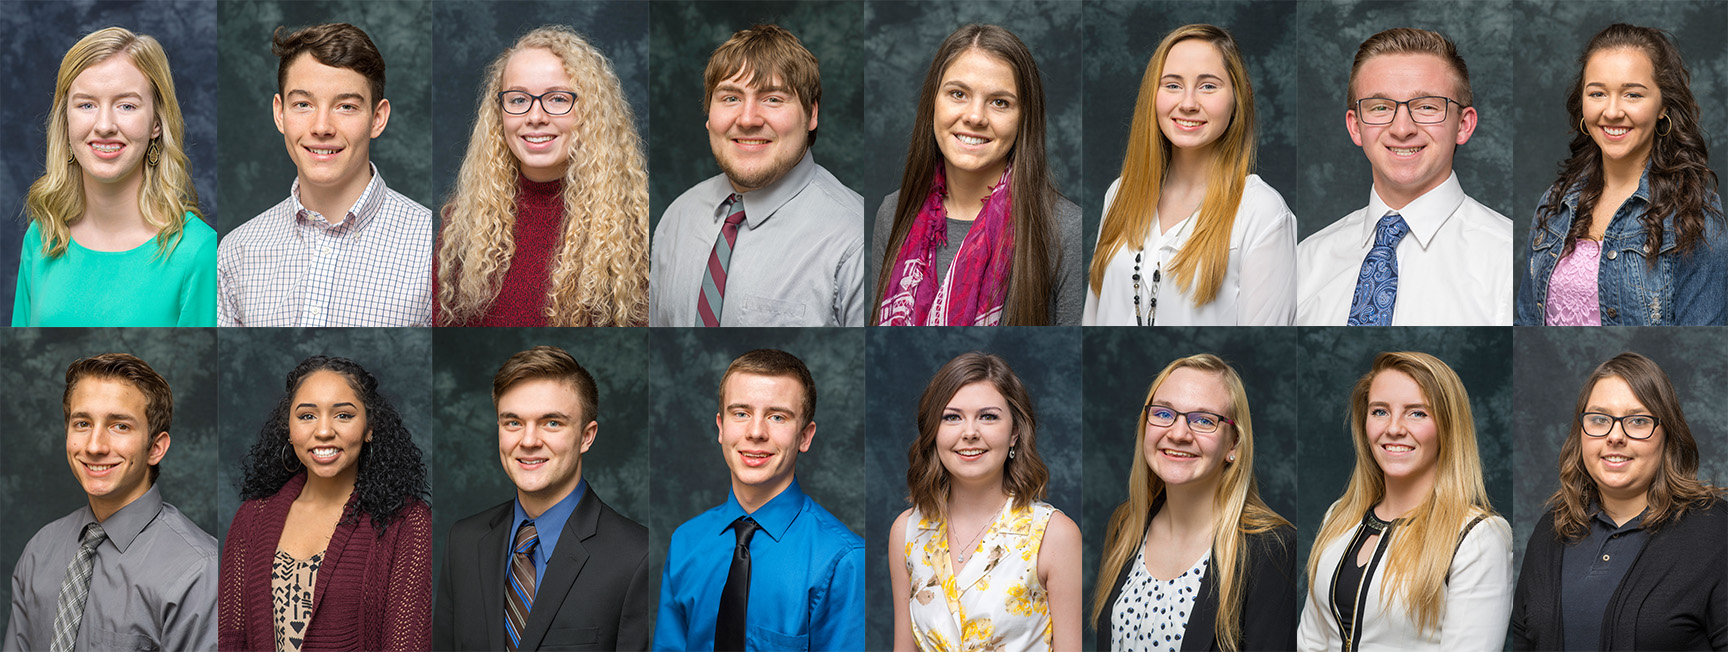 Portraits of the KCC Foundation's 16 2017-18 Gold Key Scholars.